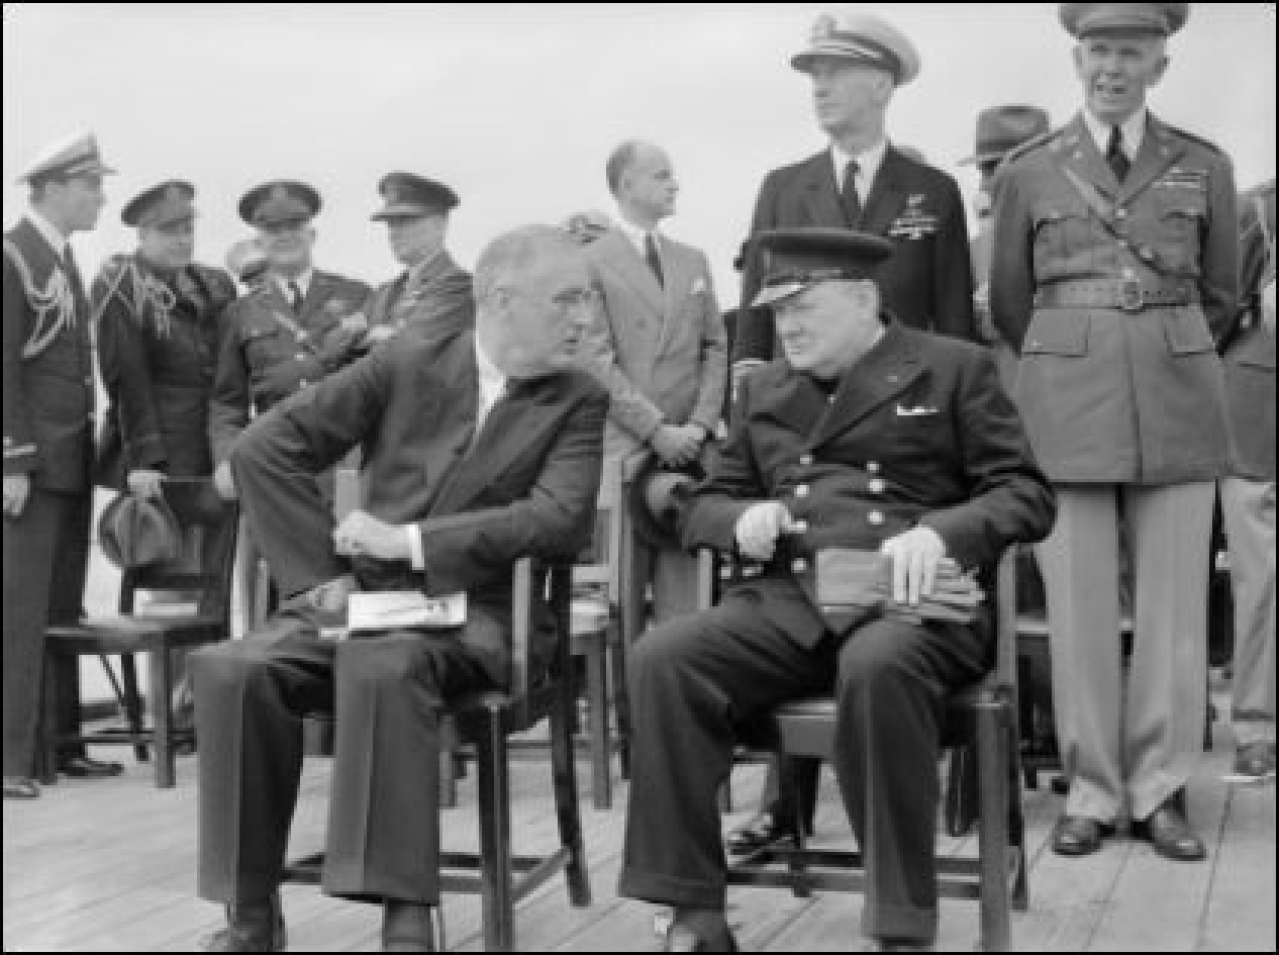 Franklin D Roosevelt and Winston Churchill seated on the quarterdeck of HMS Prince of Wales following a Sunday service during the Atlantic Conference, 10 August 1941. (Wikimedia Commons)